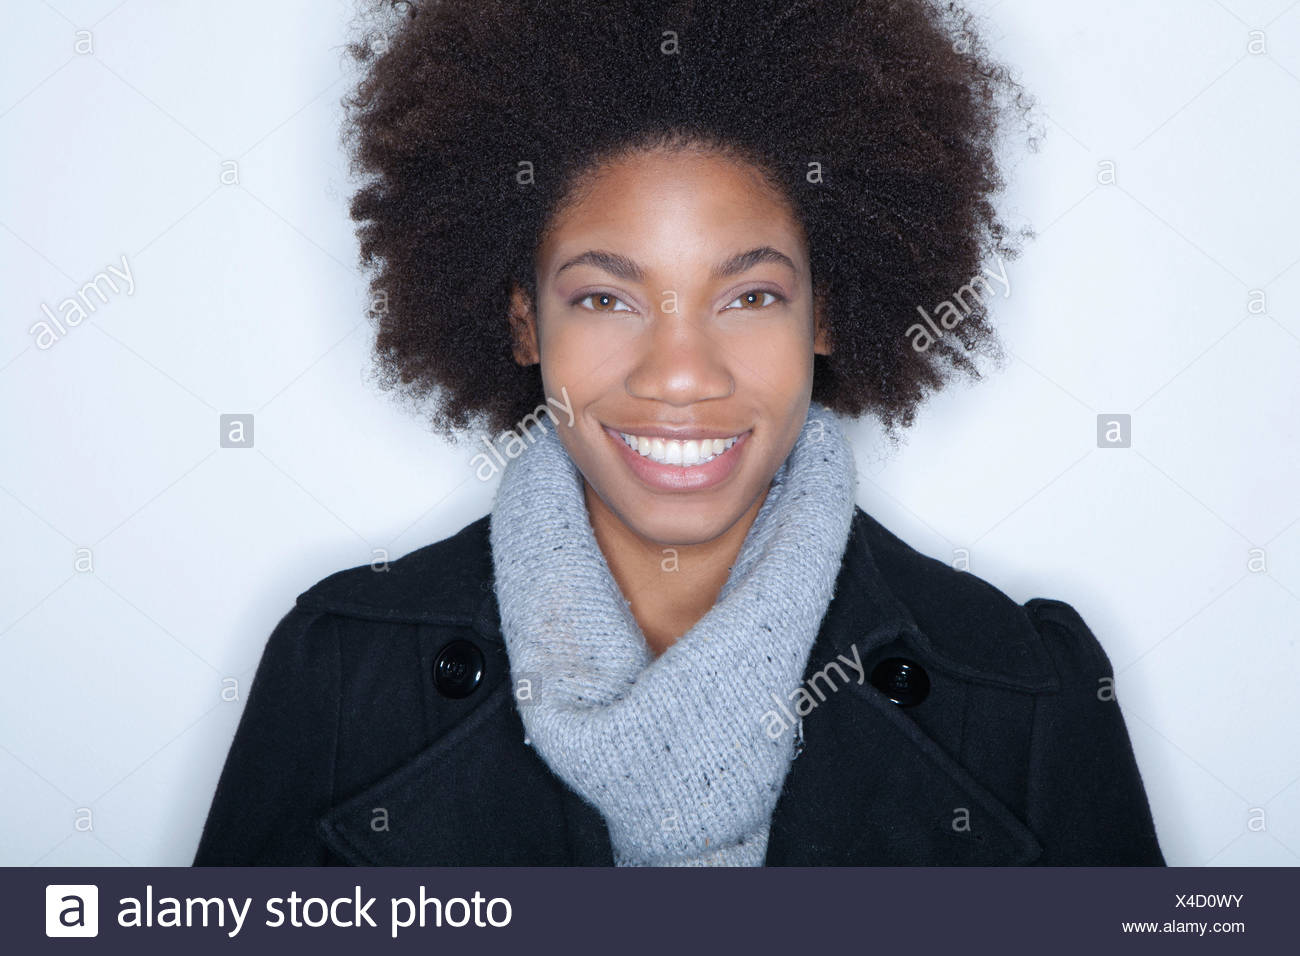 Studio portrait of young woman with afro - Stock Image